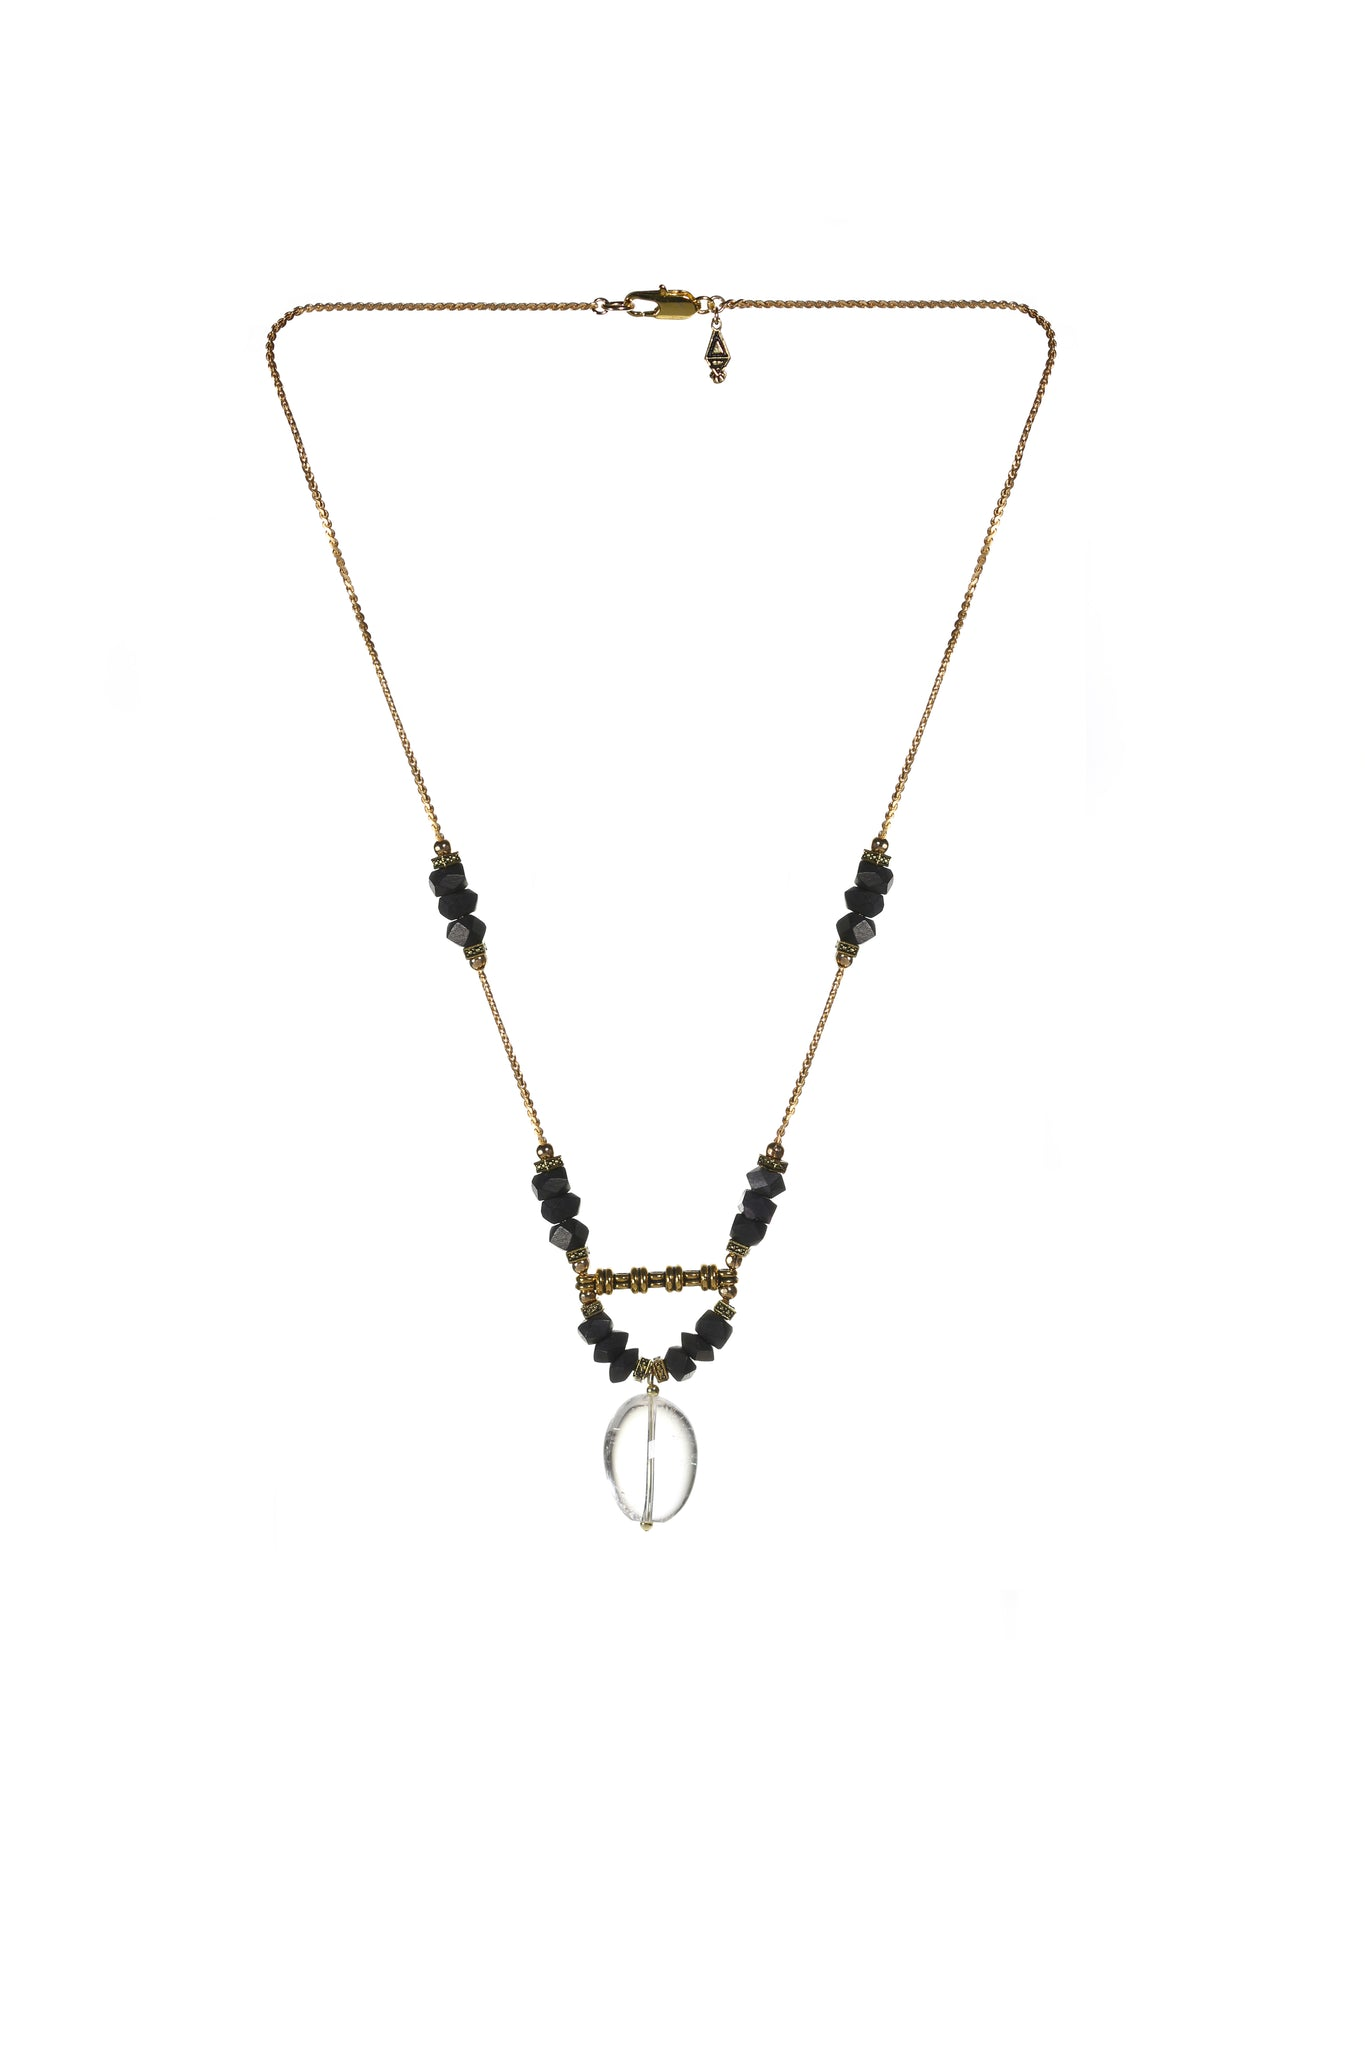 Handmade bohemian jewelry, long crystal necklace made in Canada